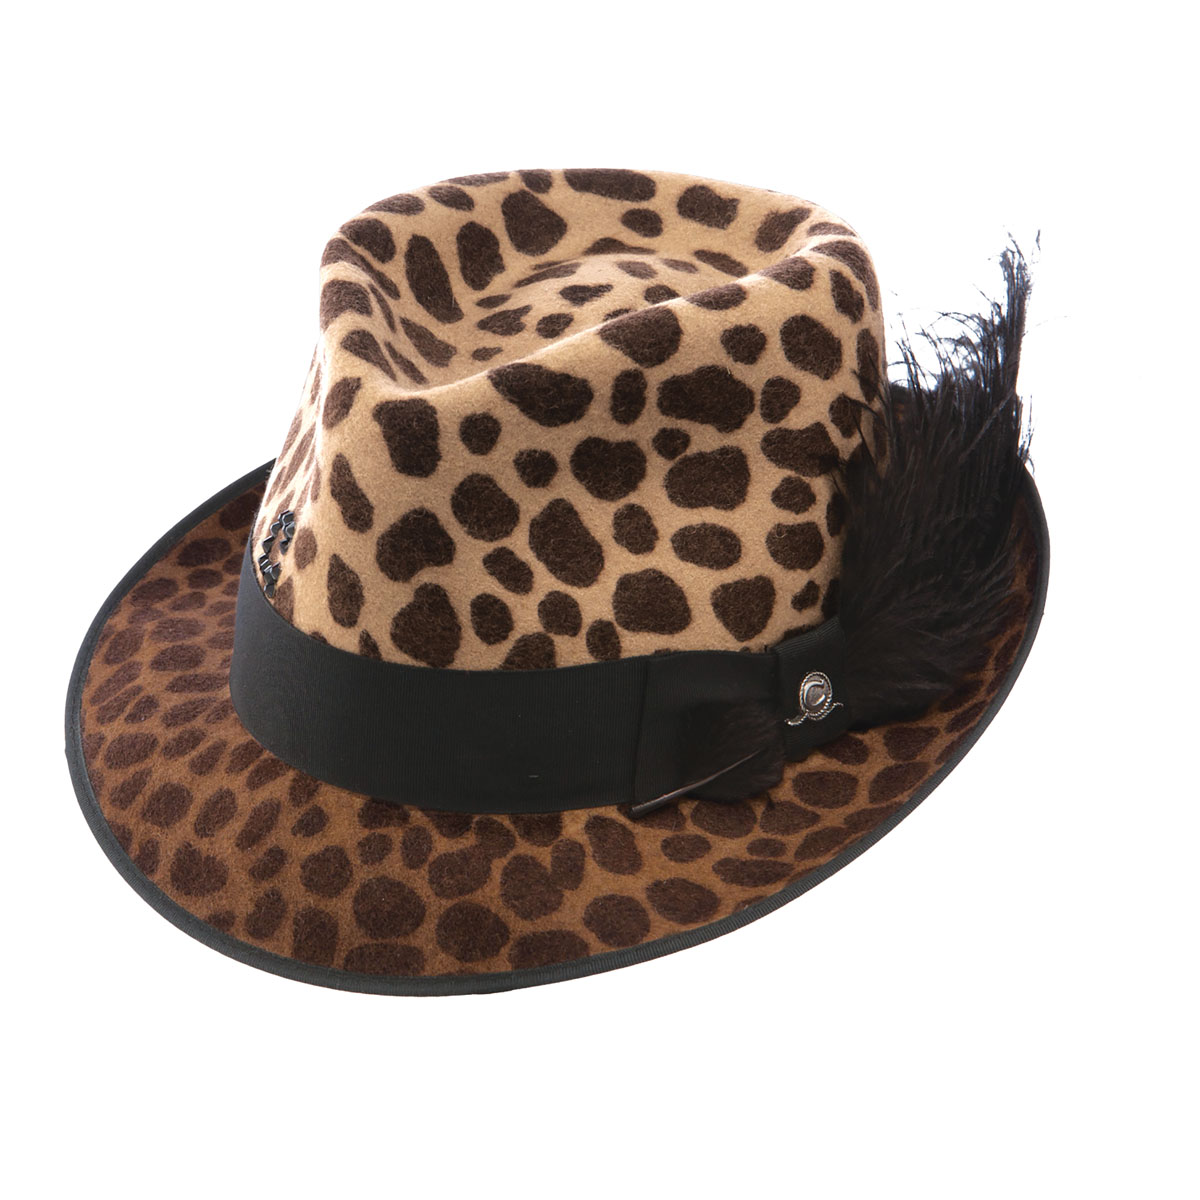 58d7e96743cd9 Pungo Ridge - Charlie 1 Horse On The Prowl Felt Hat - Leopard ...